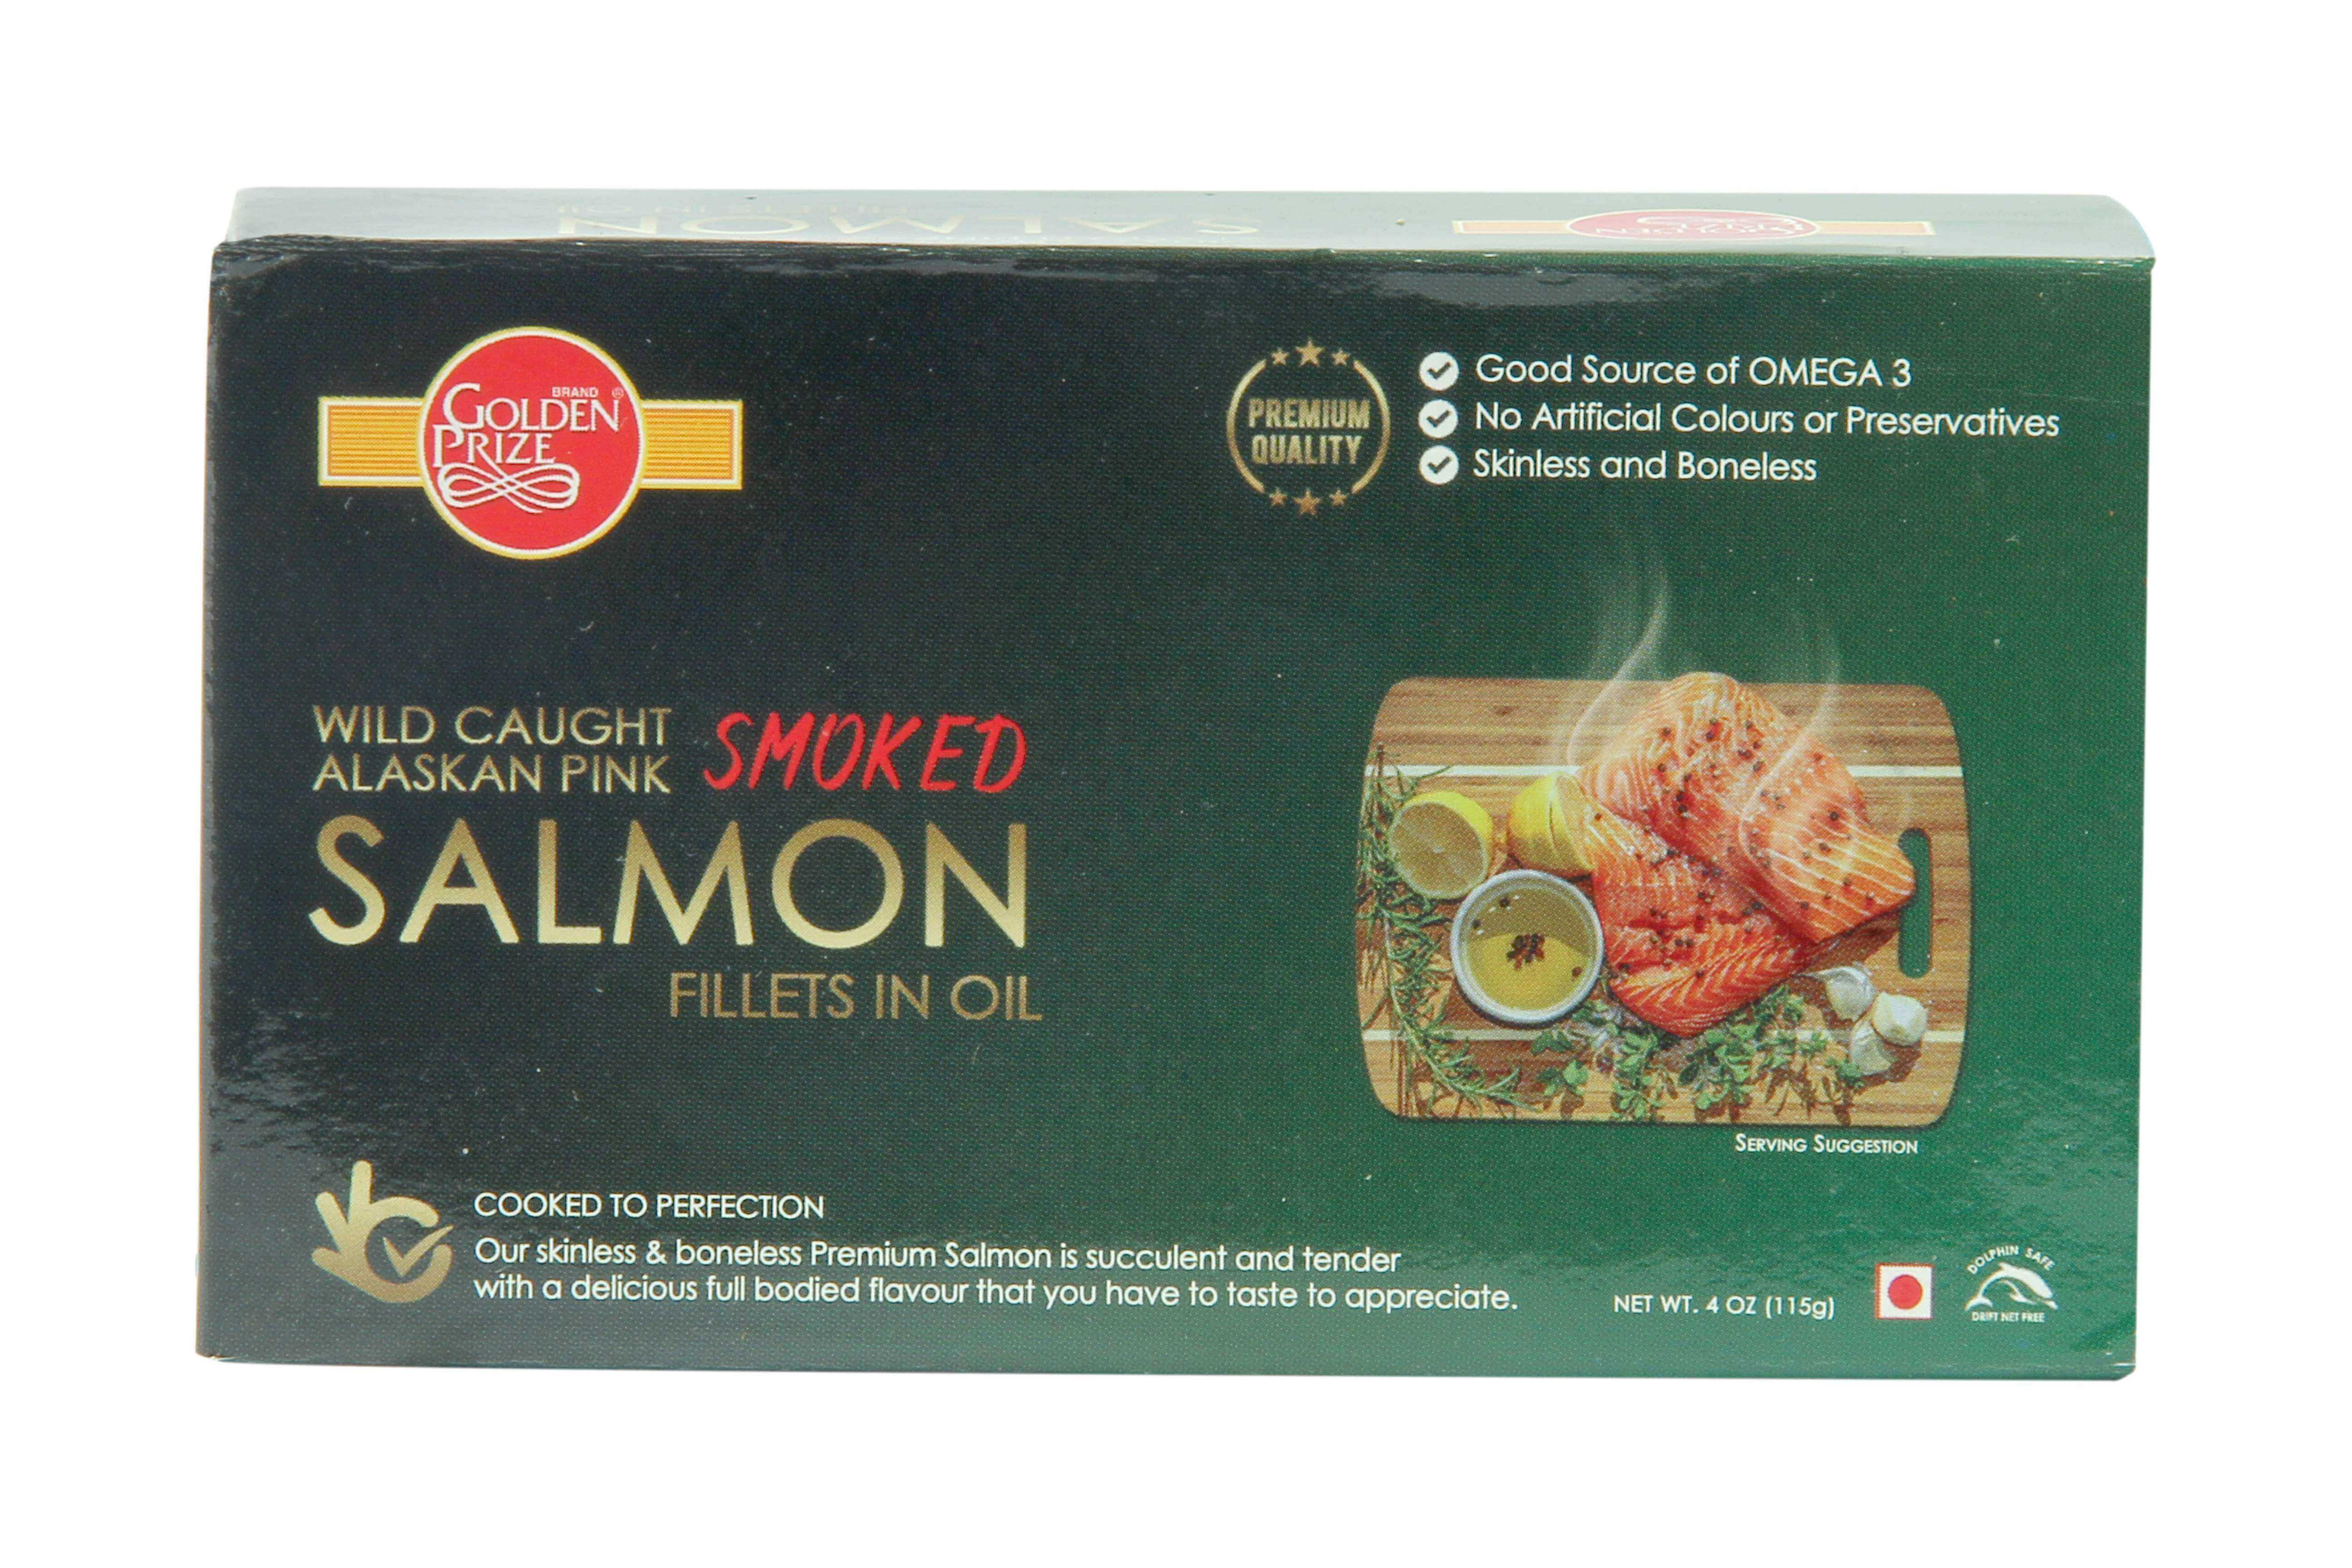 Smoked Salmon Fillets in Oil